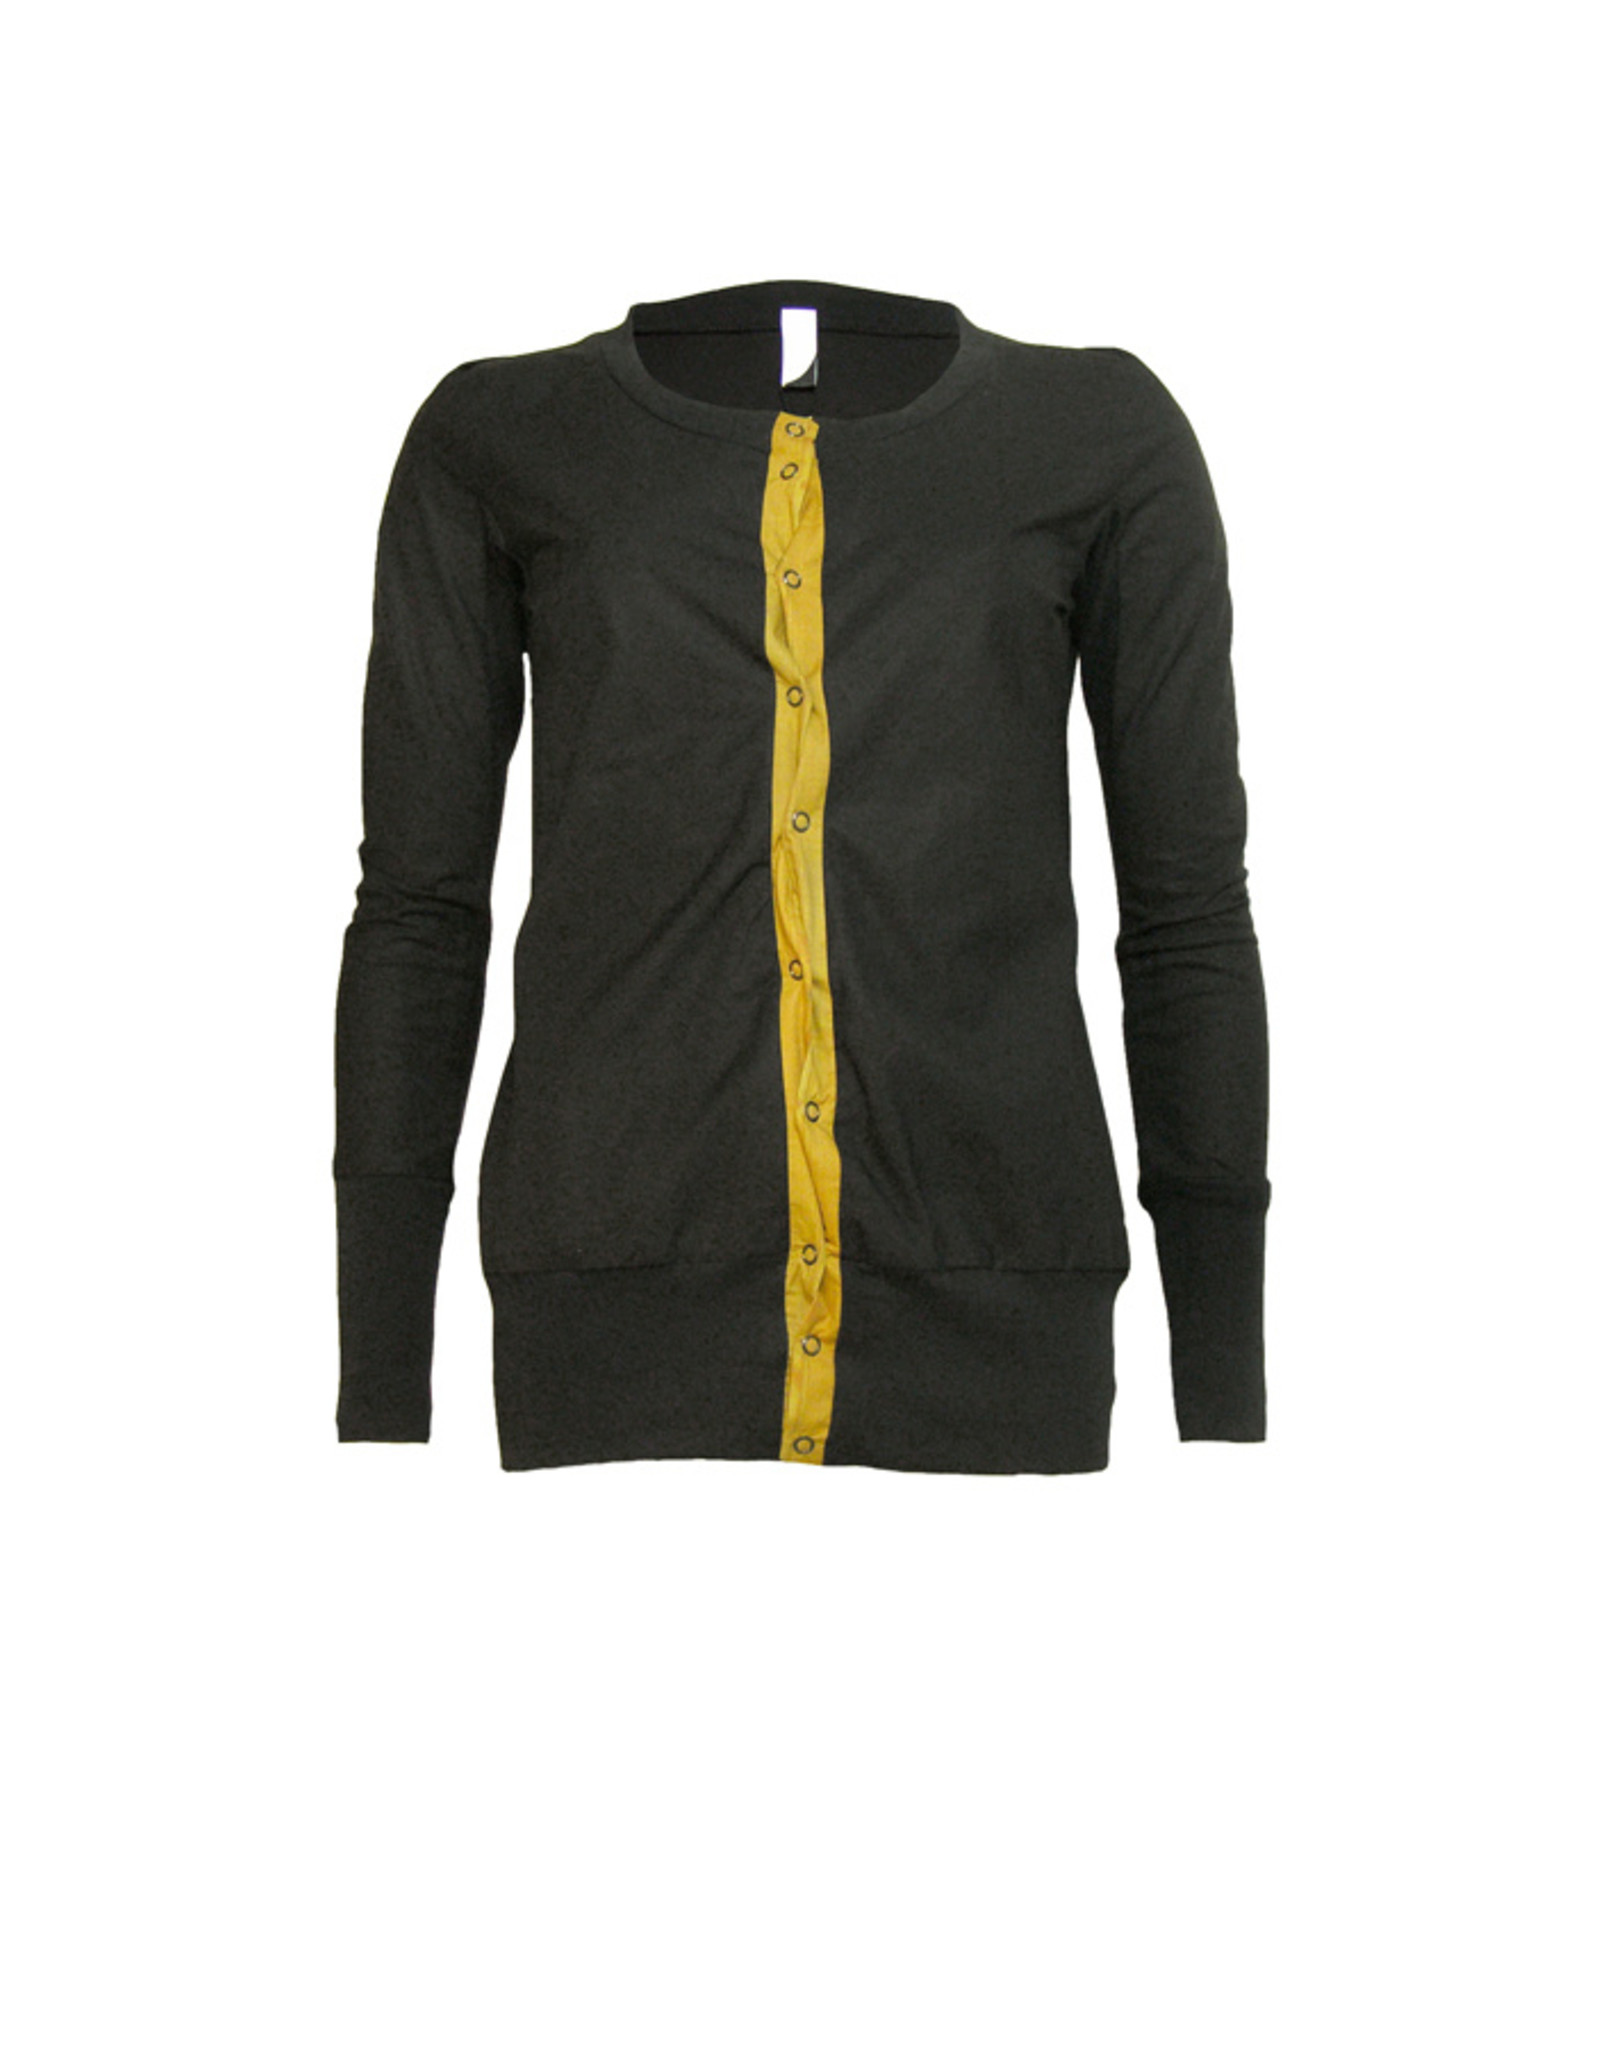 format PUSH blouse/ jacket